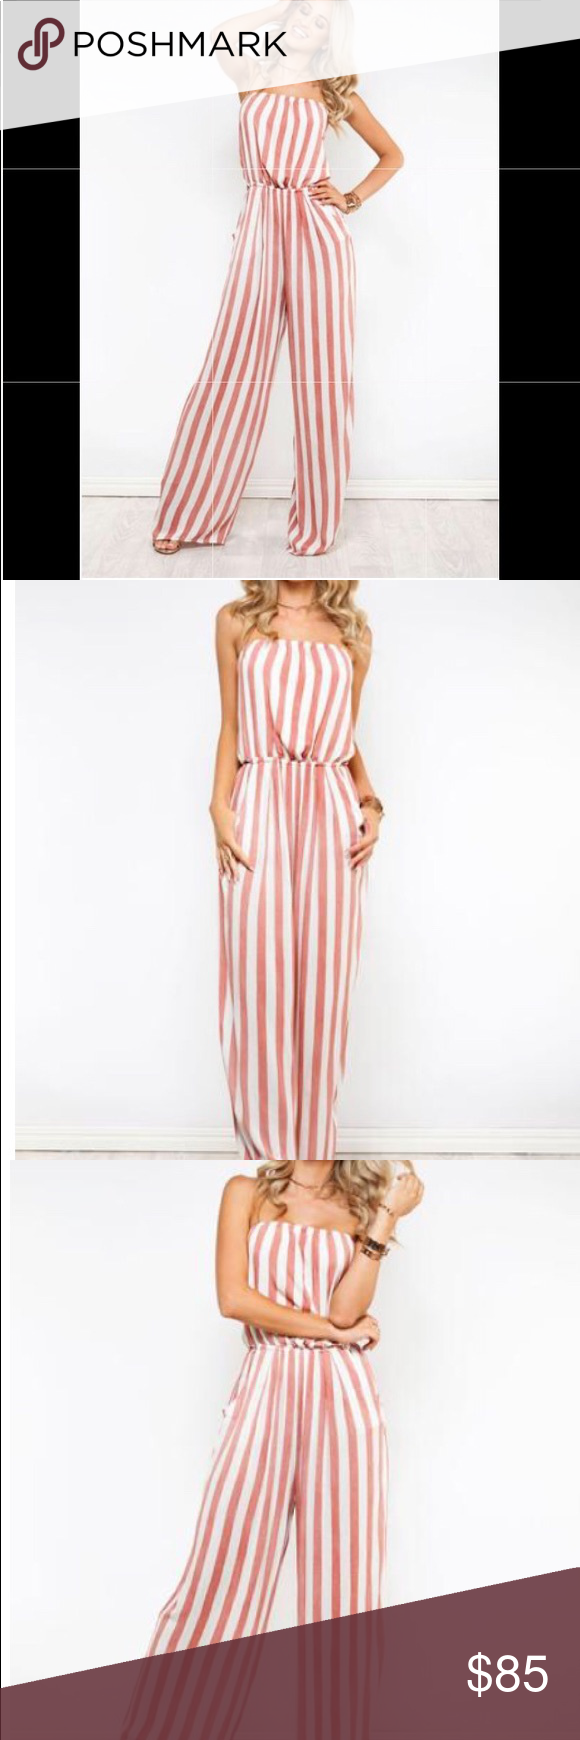 Red And White Stripe Jumpsuit Striped Jumpsuit Red And White Stripes Jumpsuit